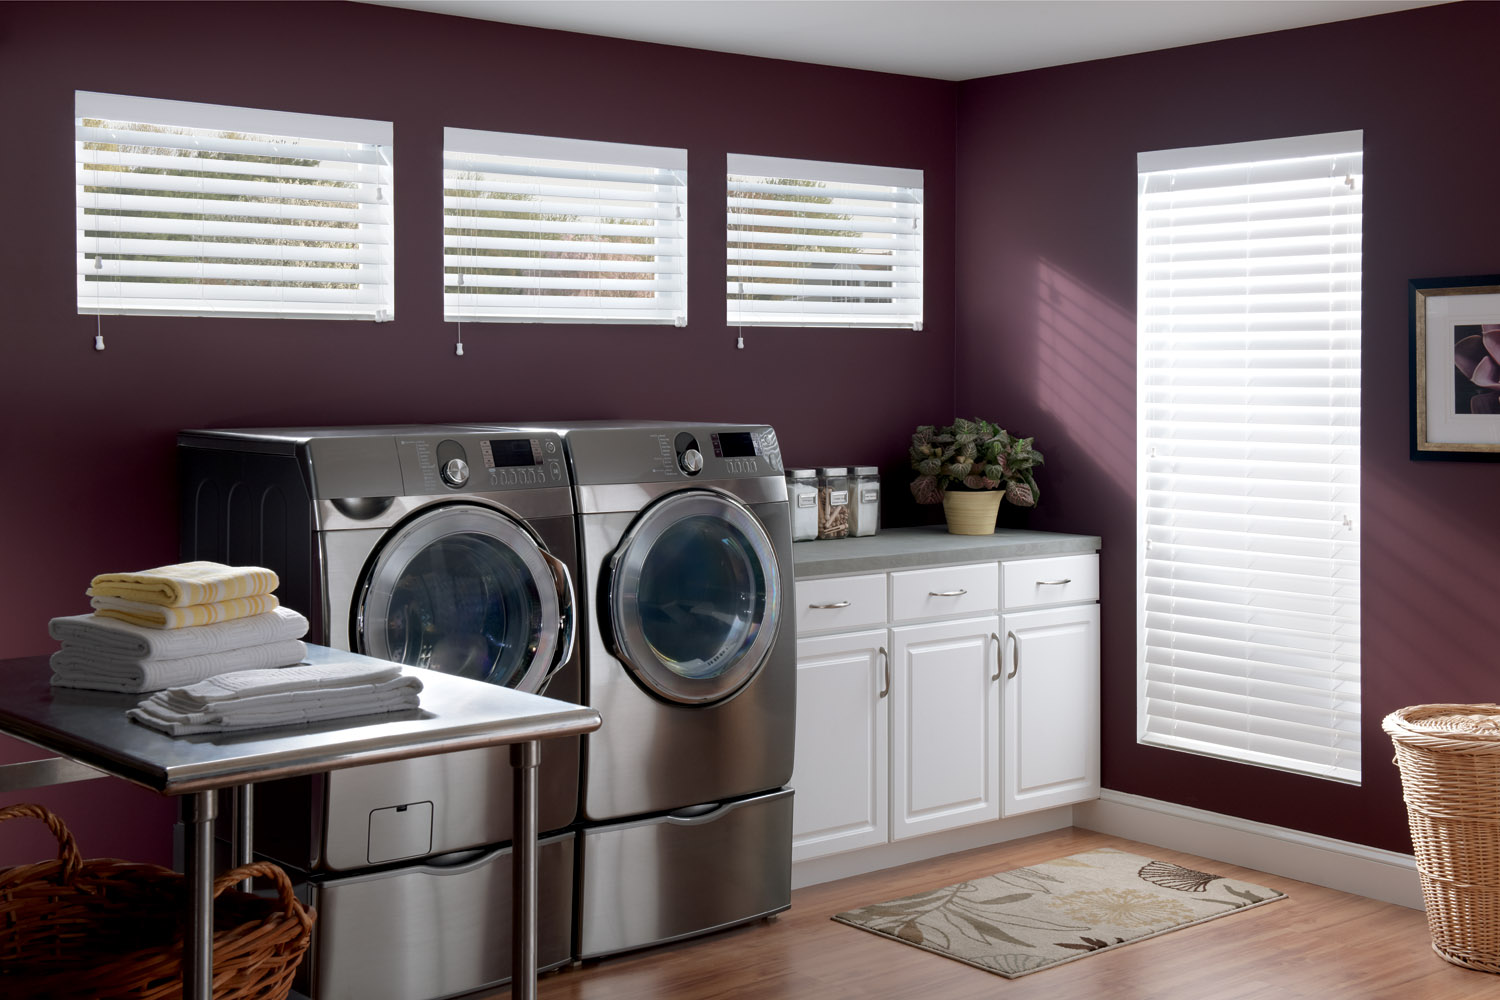 purple wall with glass window and faux wood blinds matched with wooden floor plus washer machine for laundry room design ideas